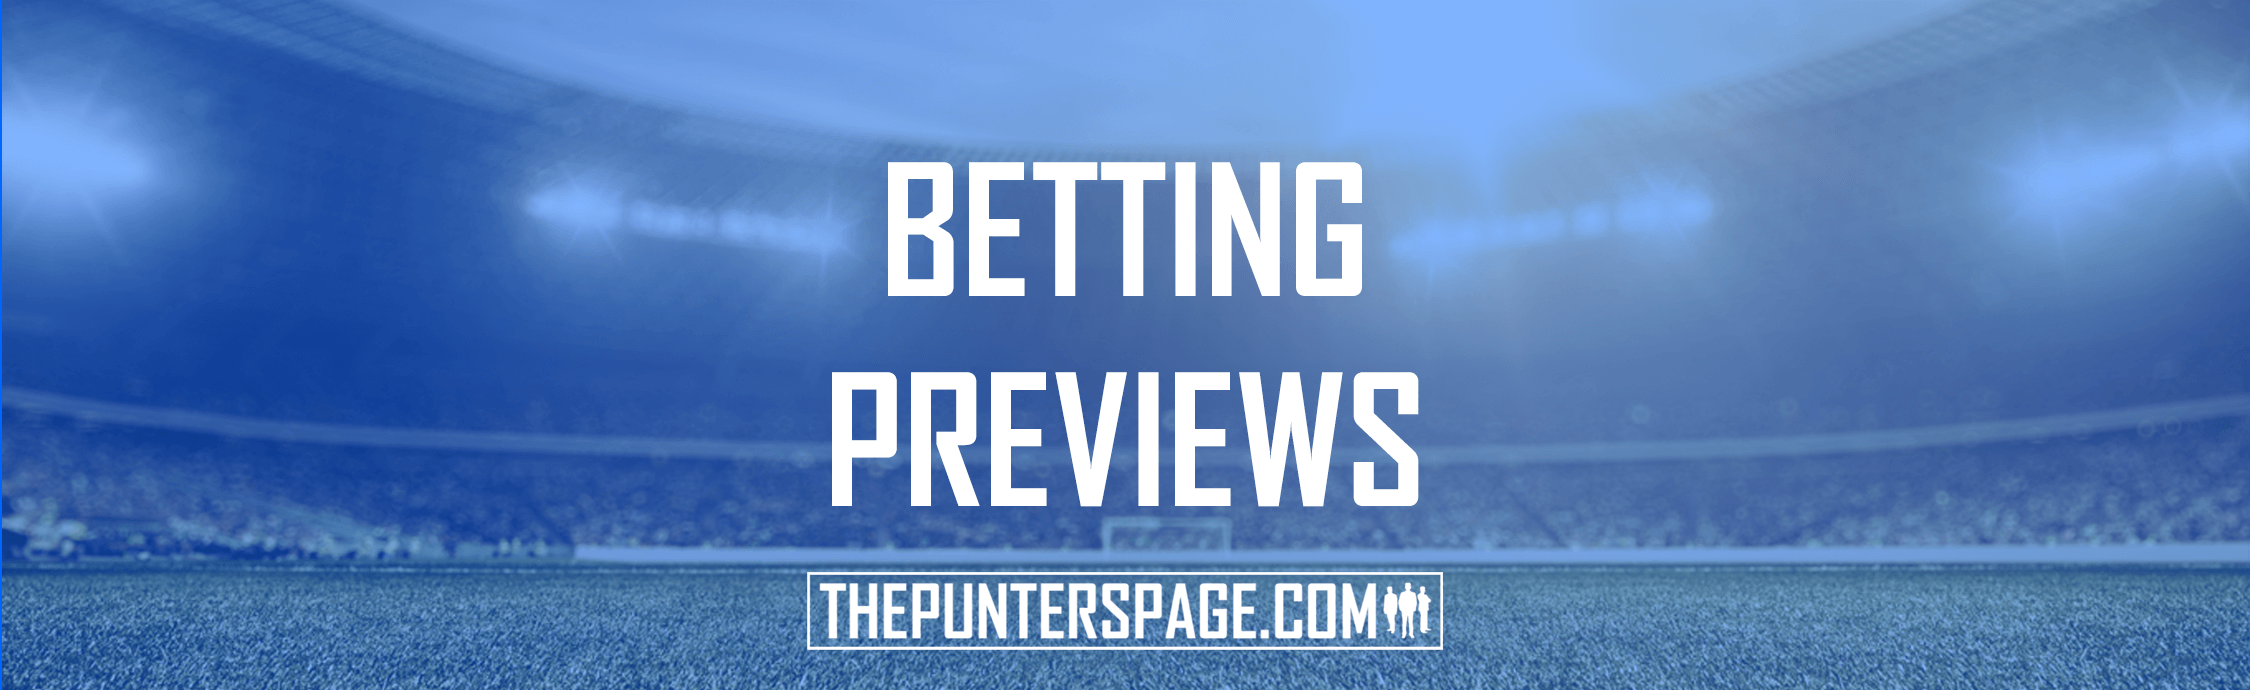 Free Betting Previews